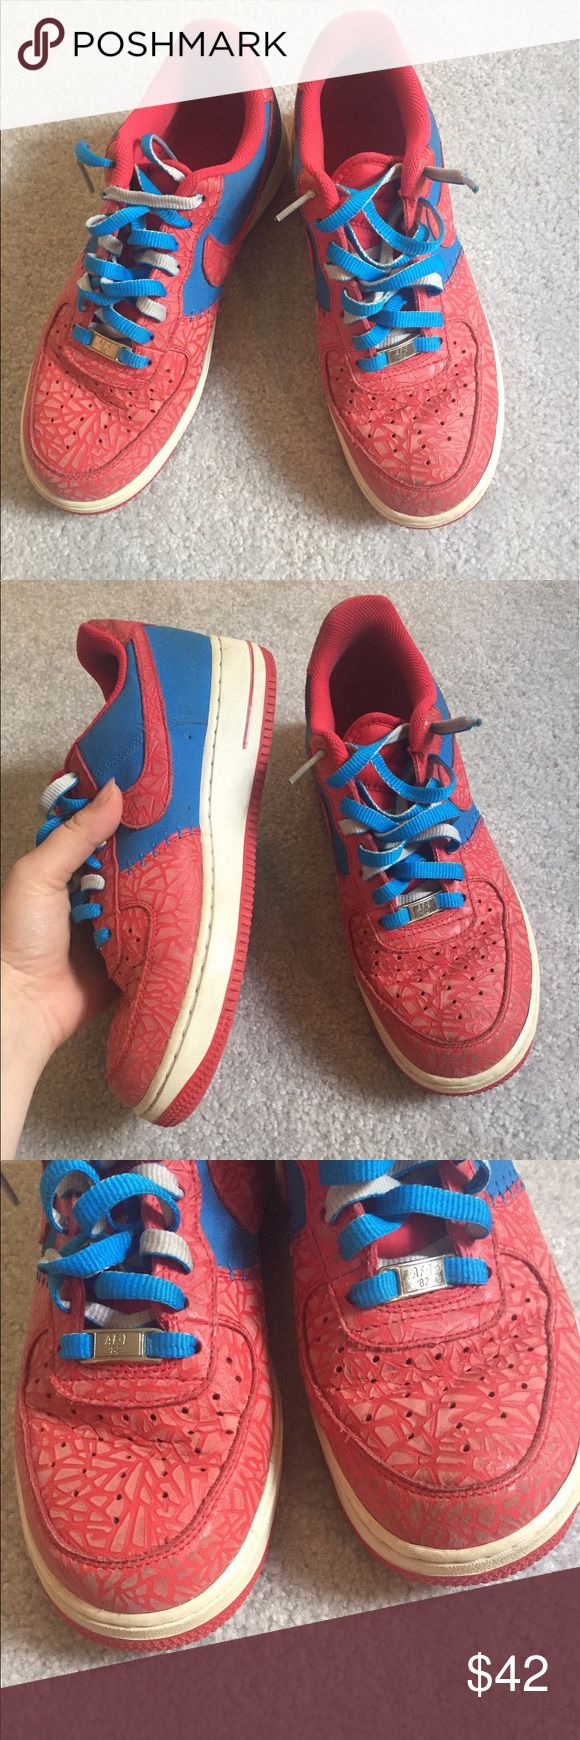 Nike Air Force 1 Red Blue 4th of July Rare sneaker Nike Air Force 1 rare red white blue sneakers size 8. They are in good condition but do have some dirtiness throughout and the rubber band has some dirtiness-turned from white to a creamier tan color. #nike #shoefie Nike Shoes Sneakers